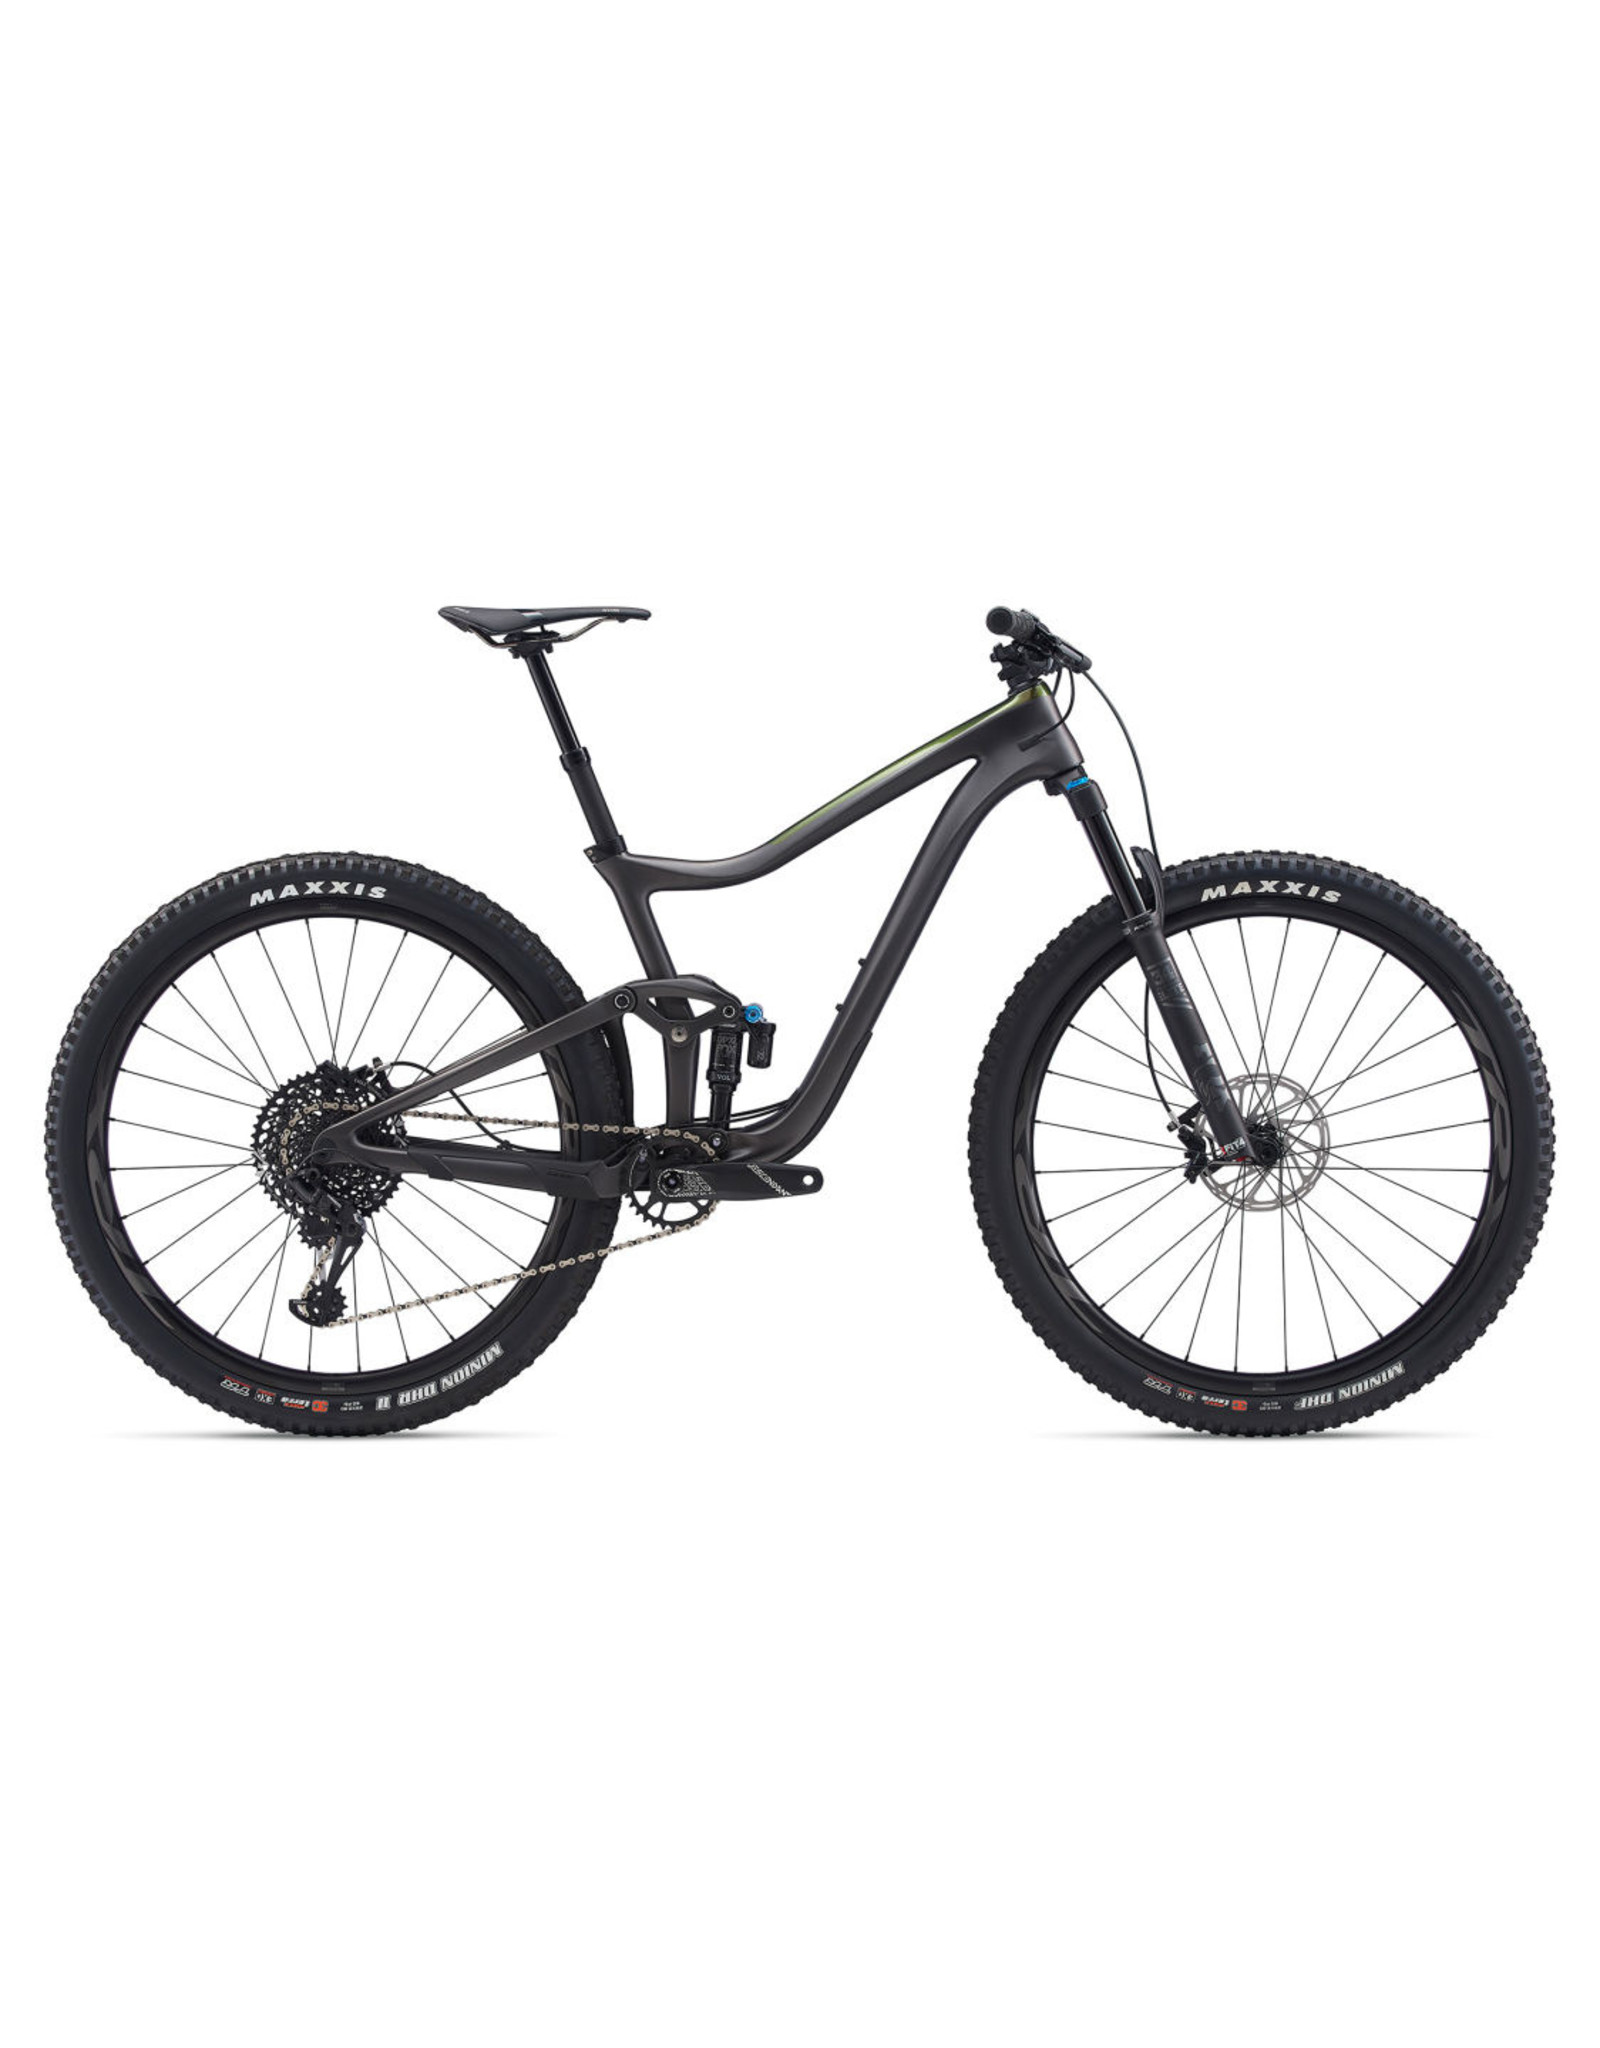 Giant 2020 Giant Trance advanced Pro 29 1